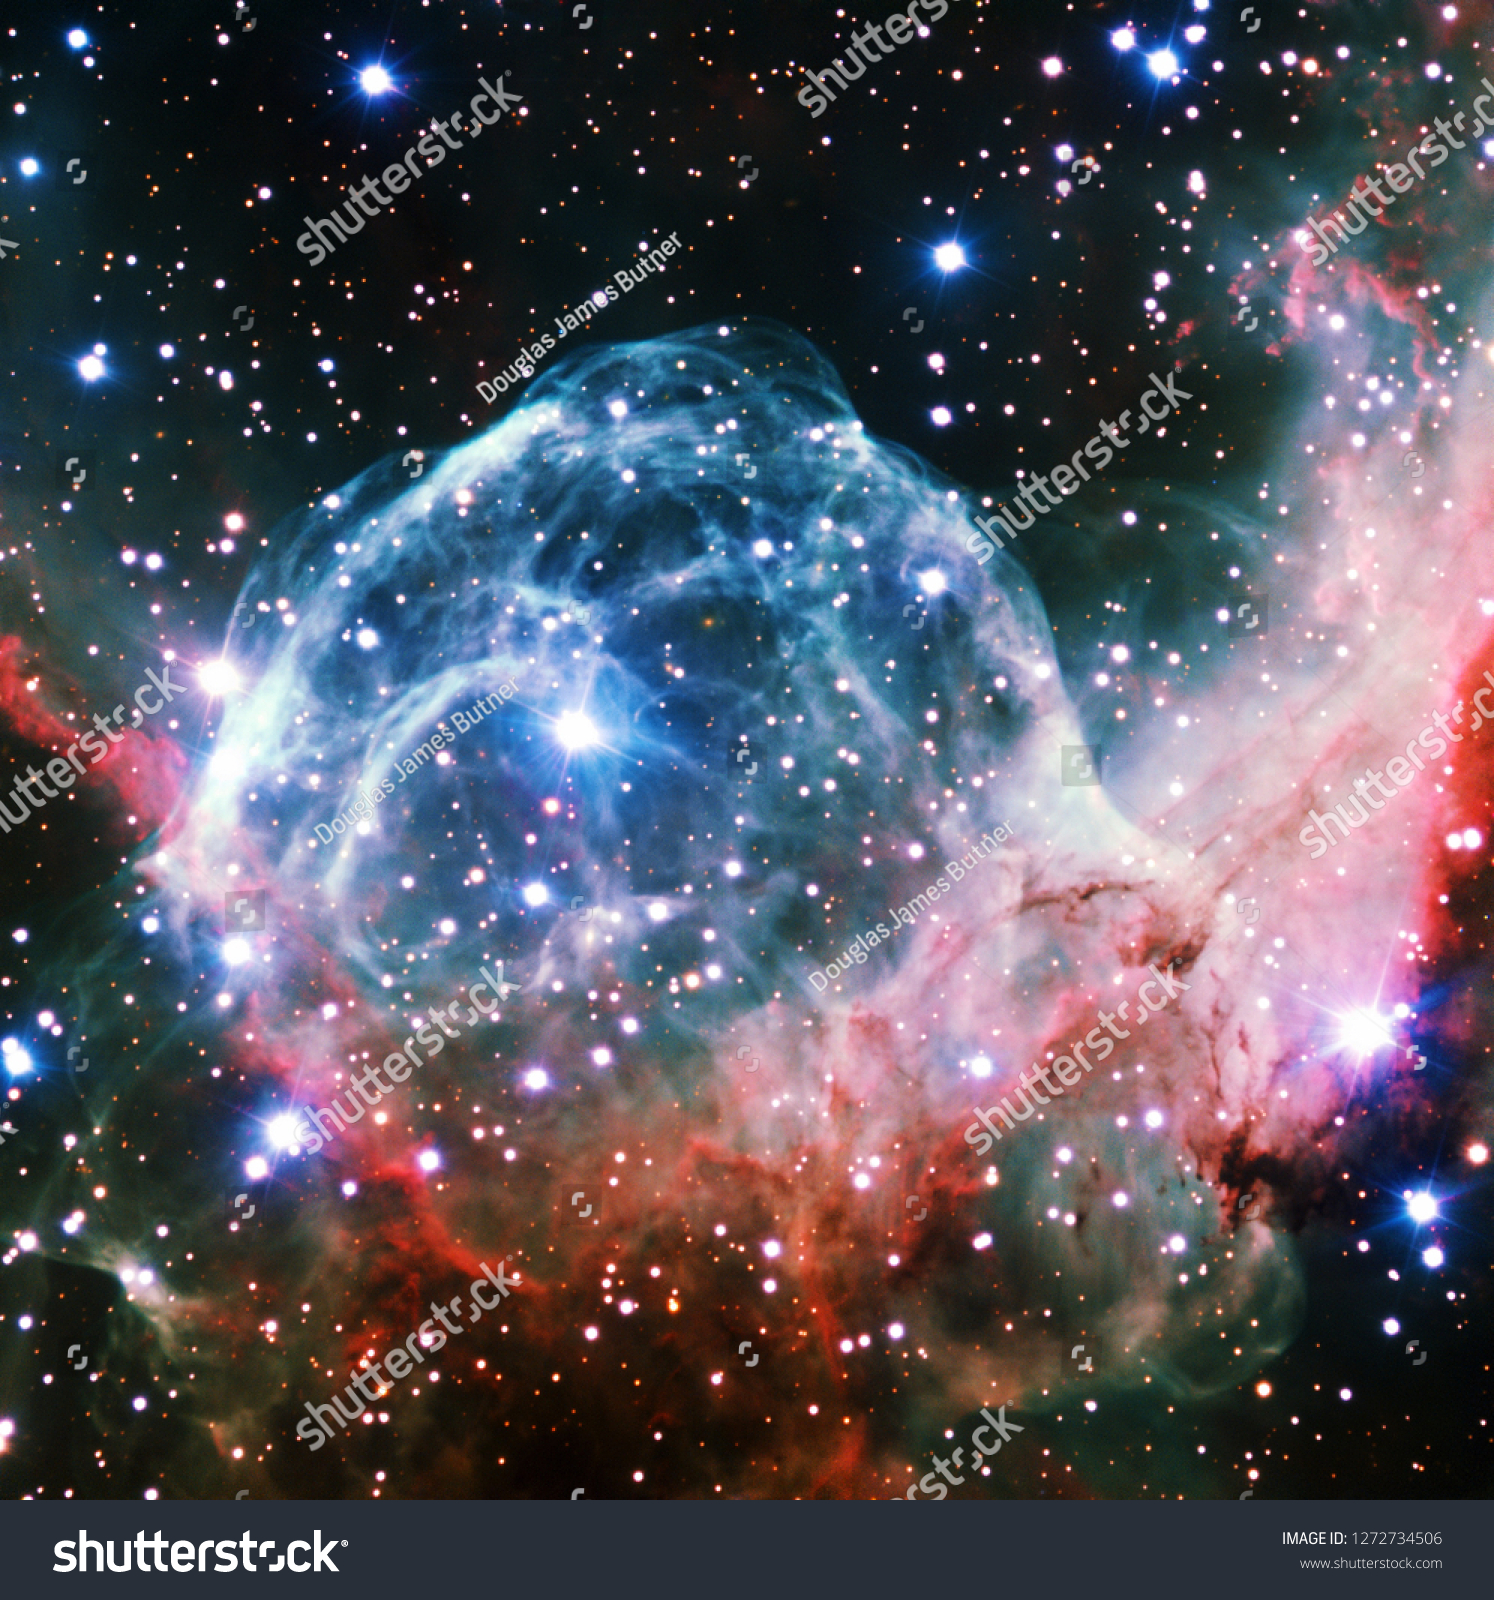 stock photo thor s helmet nebula recolored red and blue galaxy universe background wallpaper original image 1272734506